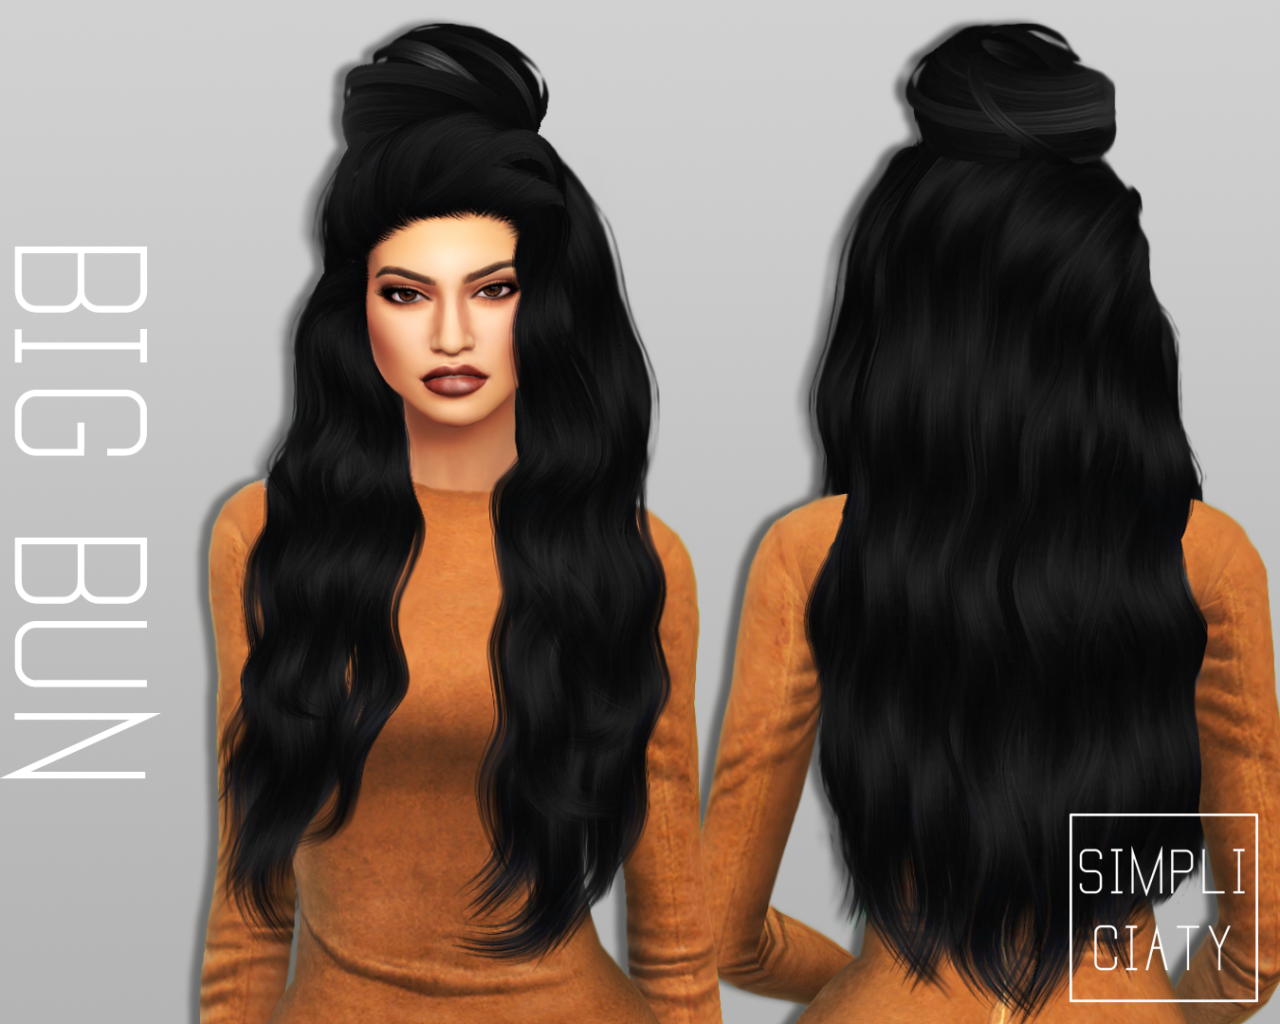 The sims 4 hair accessories - My Sims 4 Blog Accessory Hair Buns By Simpliciaty